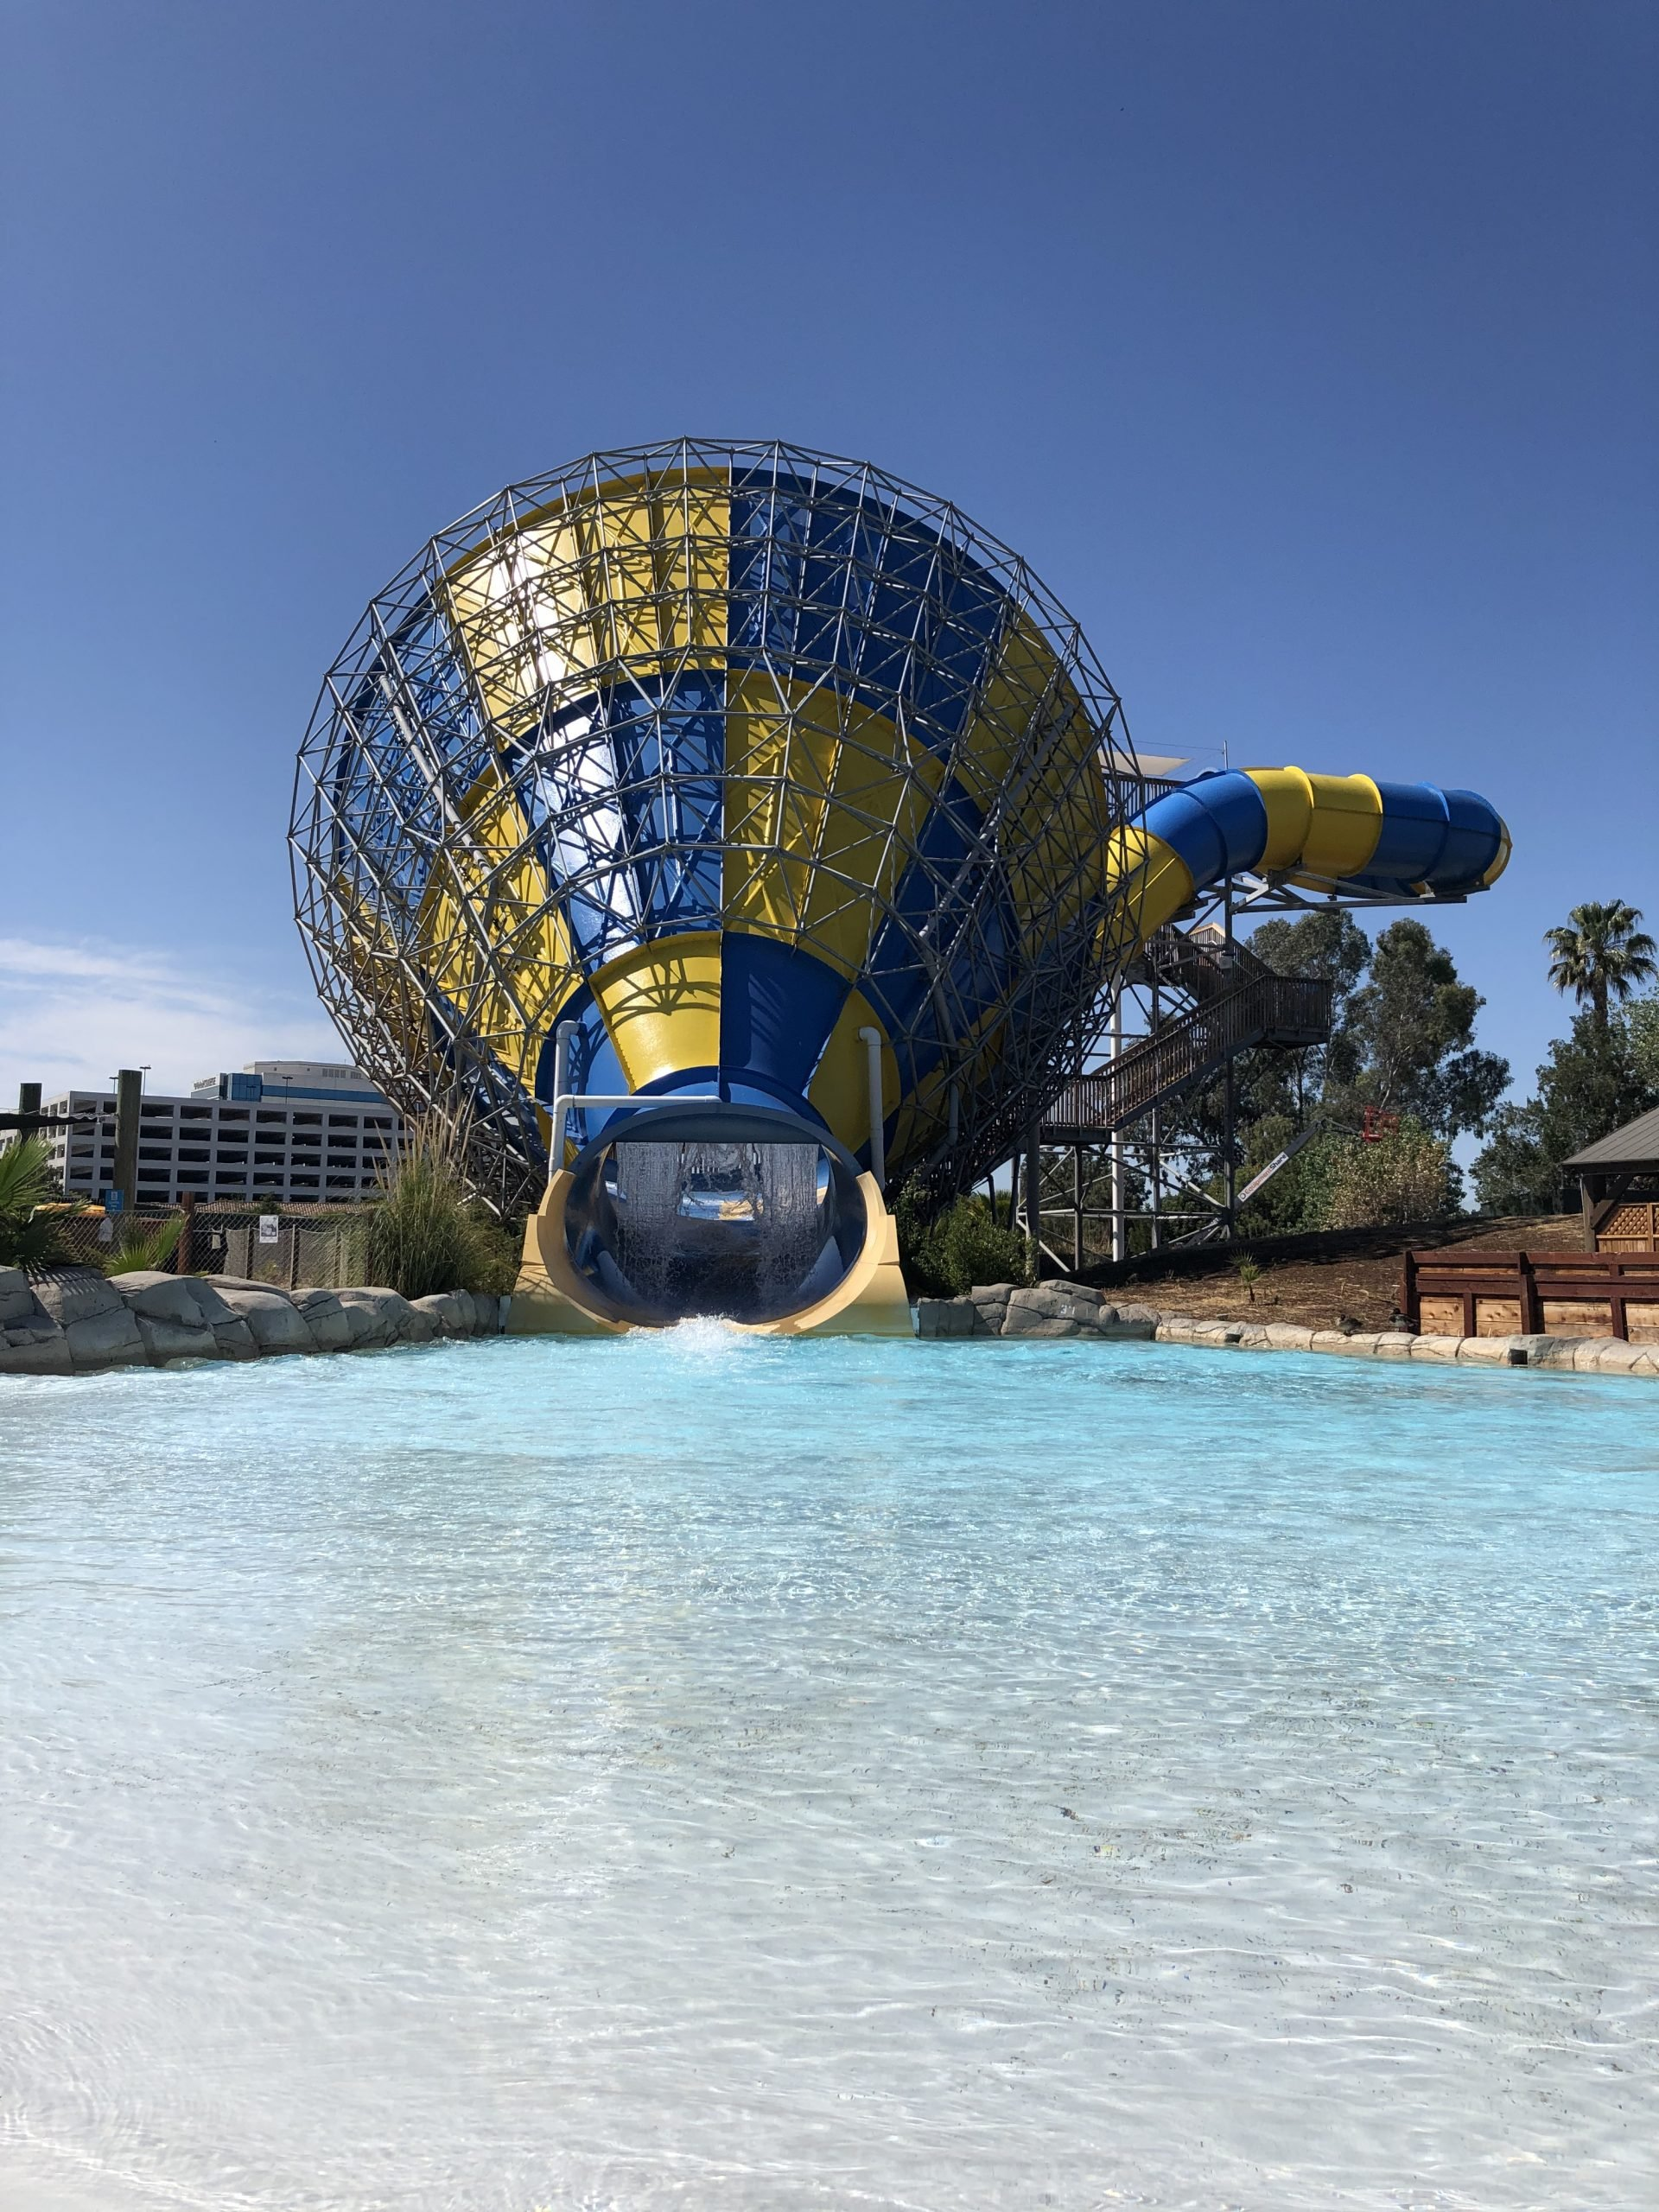 view of the splash down pool for The Big Kahuna at Hurricane Harbor